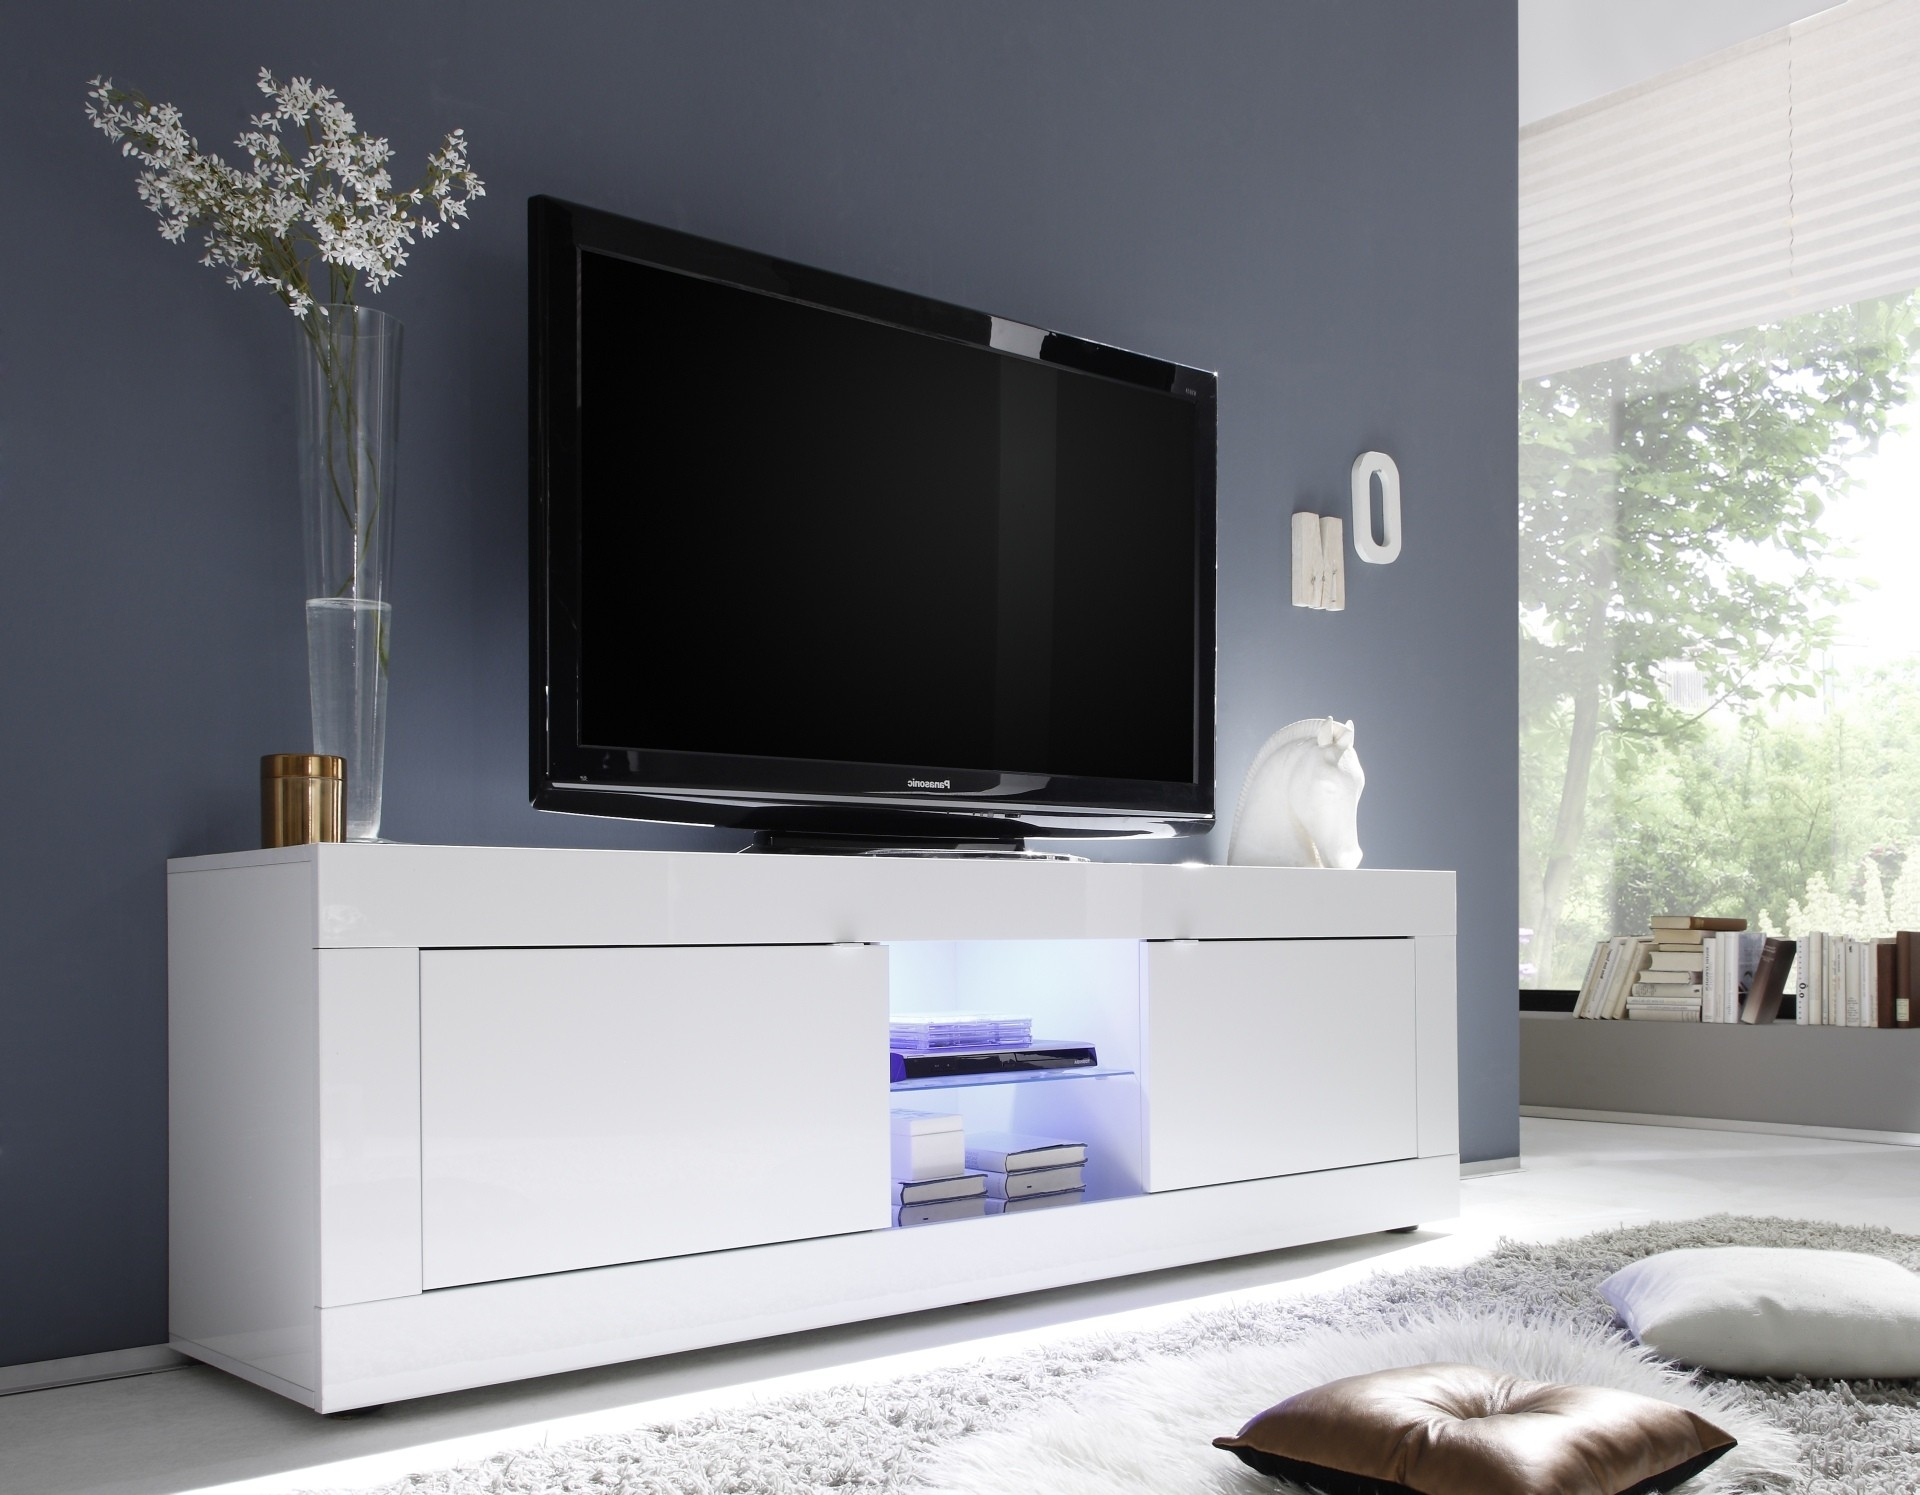 Dolcevita Ii Gloss Tv Stand Tv Stands Sena Home Furniture Throughout Bespoke Tv Stands (View 4 of 15)